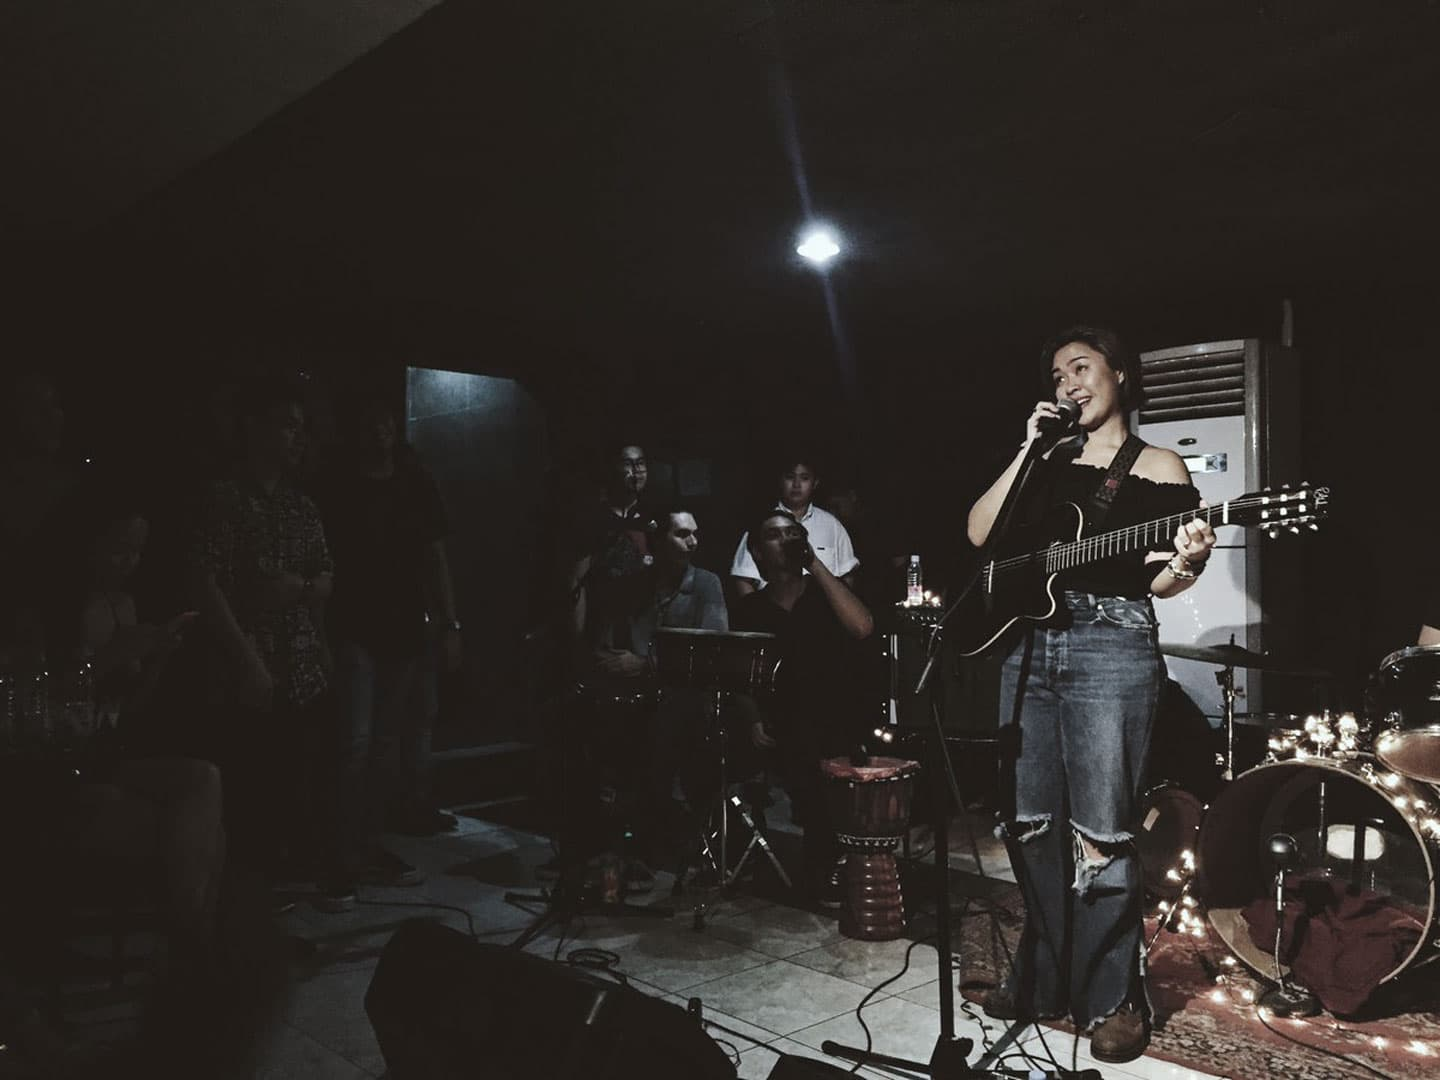 Rice Lucido performs live at Mow's for her Pahina Uno EP launch